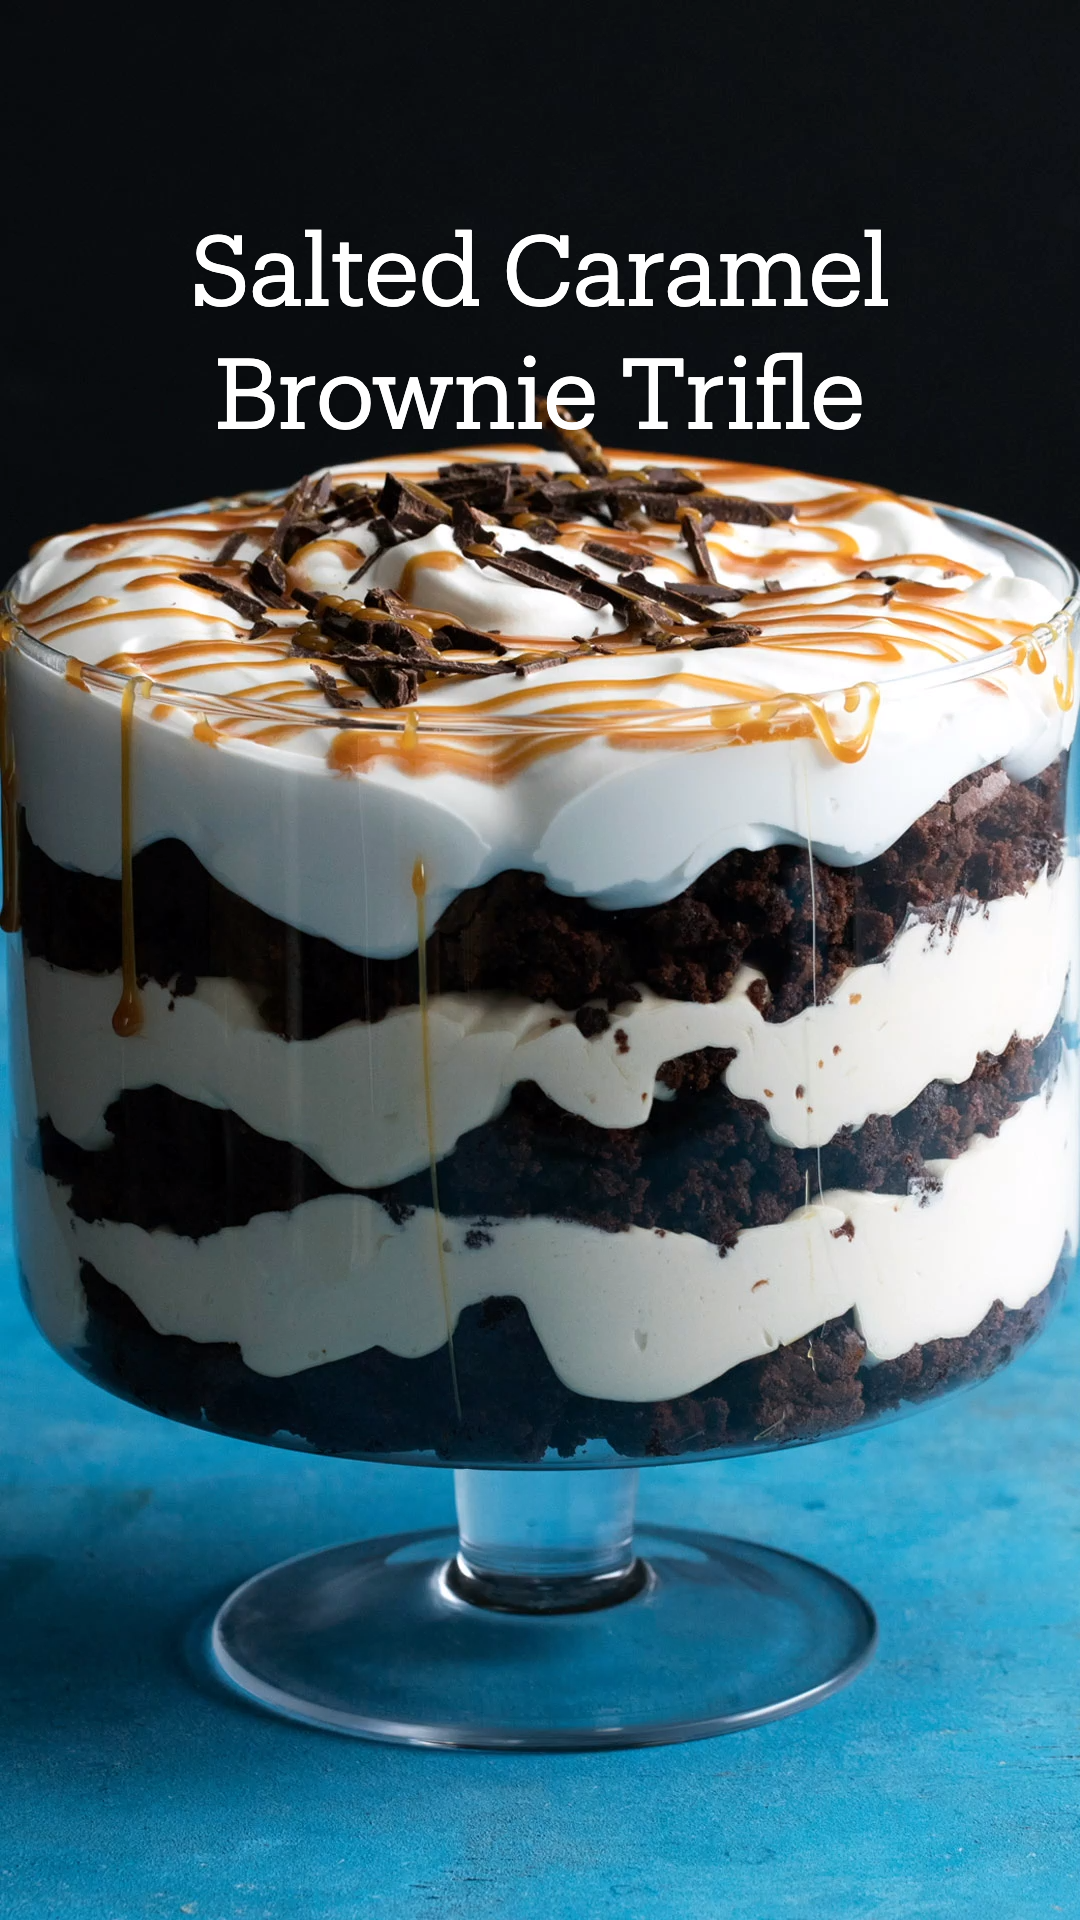 Photo of Salted Caramel Brownie Trifle